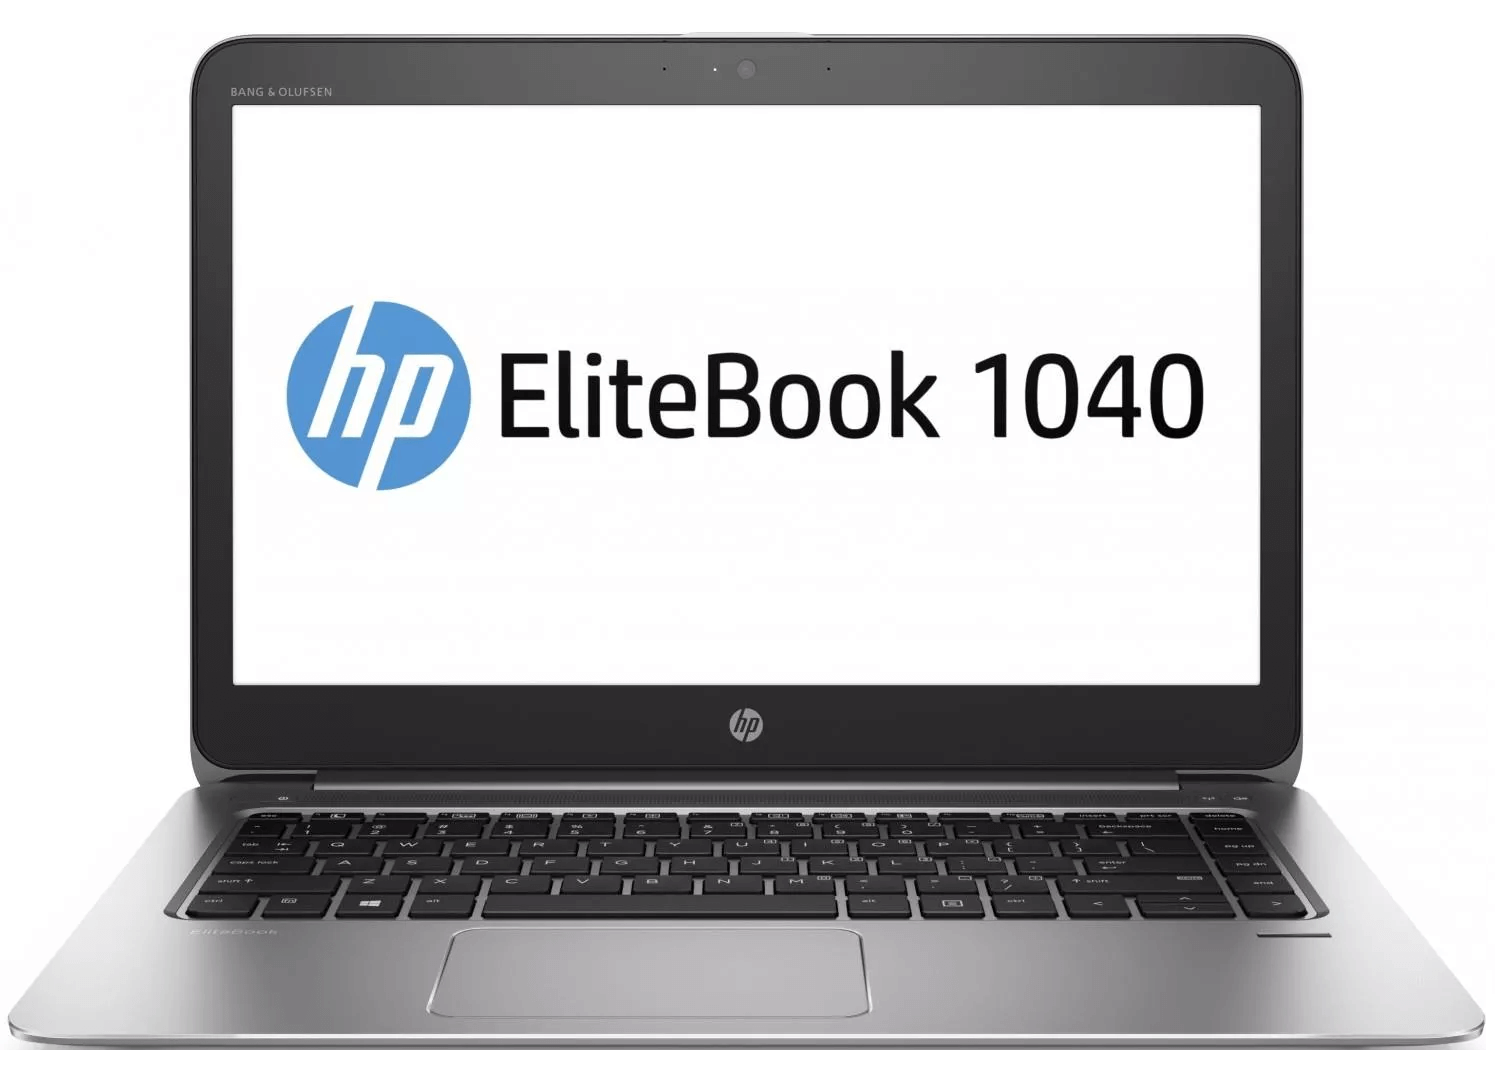 "HP ELITEBOOK FOLIO 1040 G3 I7-6600U 2.6 / 16384 MB DDR4 / 512 GB SSD M.2 / WINDOWS 10 PRO / 14"" 1920x1080 / KAMERA / CZYTNIK LINII PAPILARNYCH / BLUETOOTH"